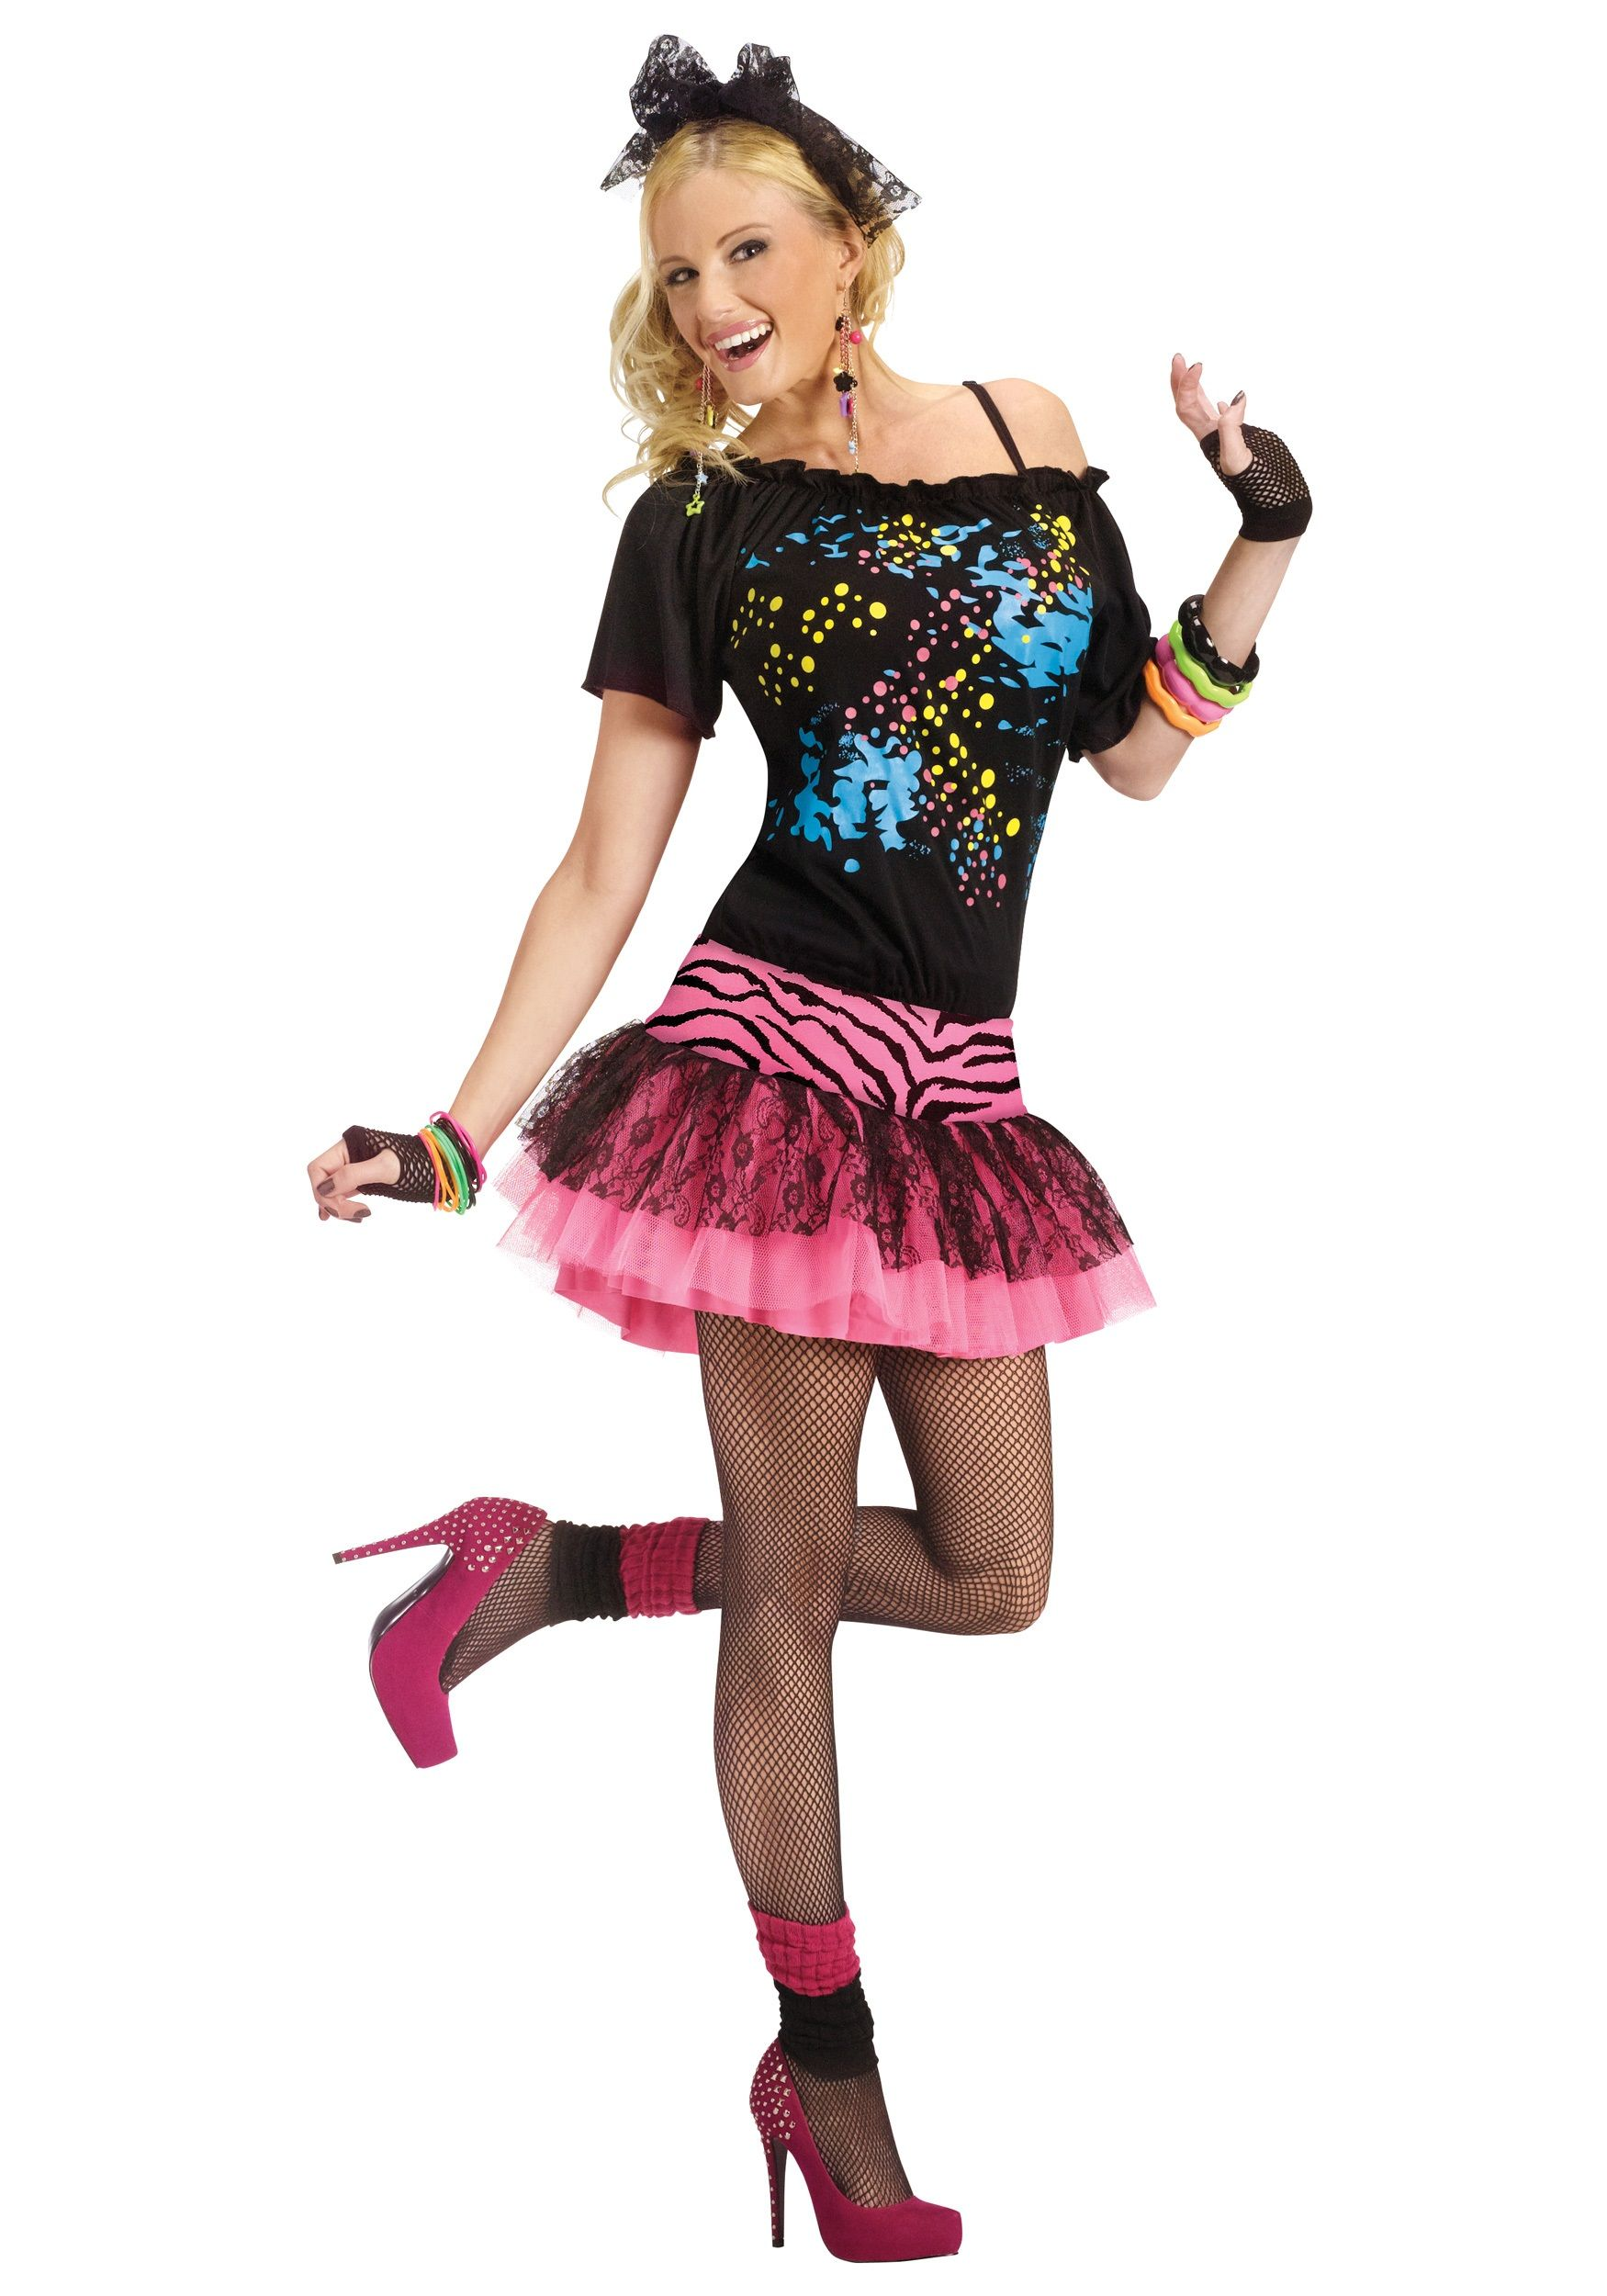 80s dress | Home Halloween Costume Ideas 80s Costume Ideas Adult 80s ...